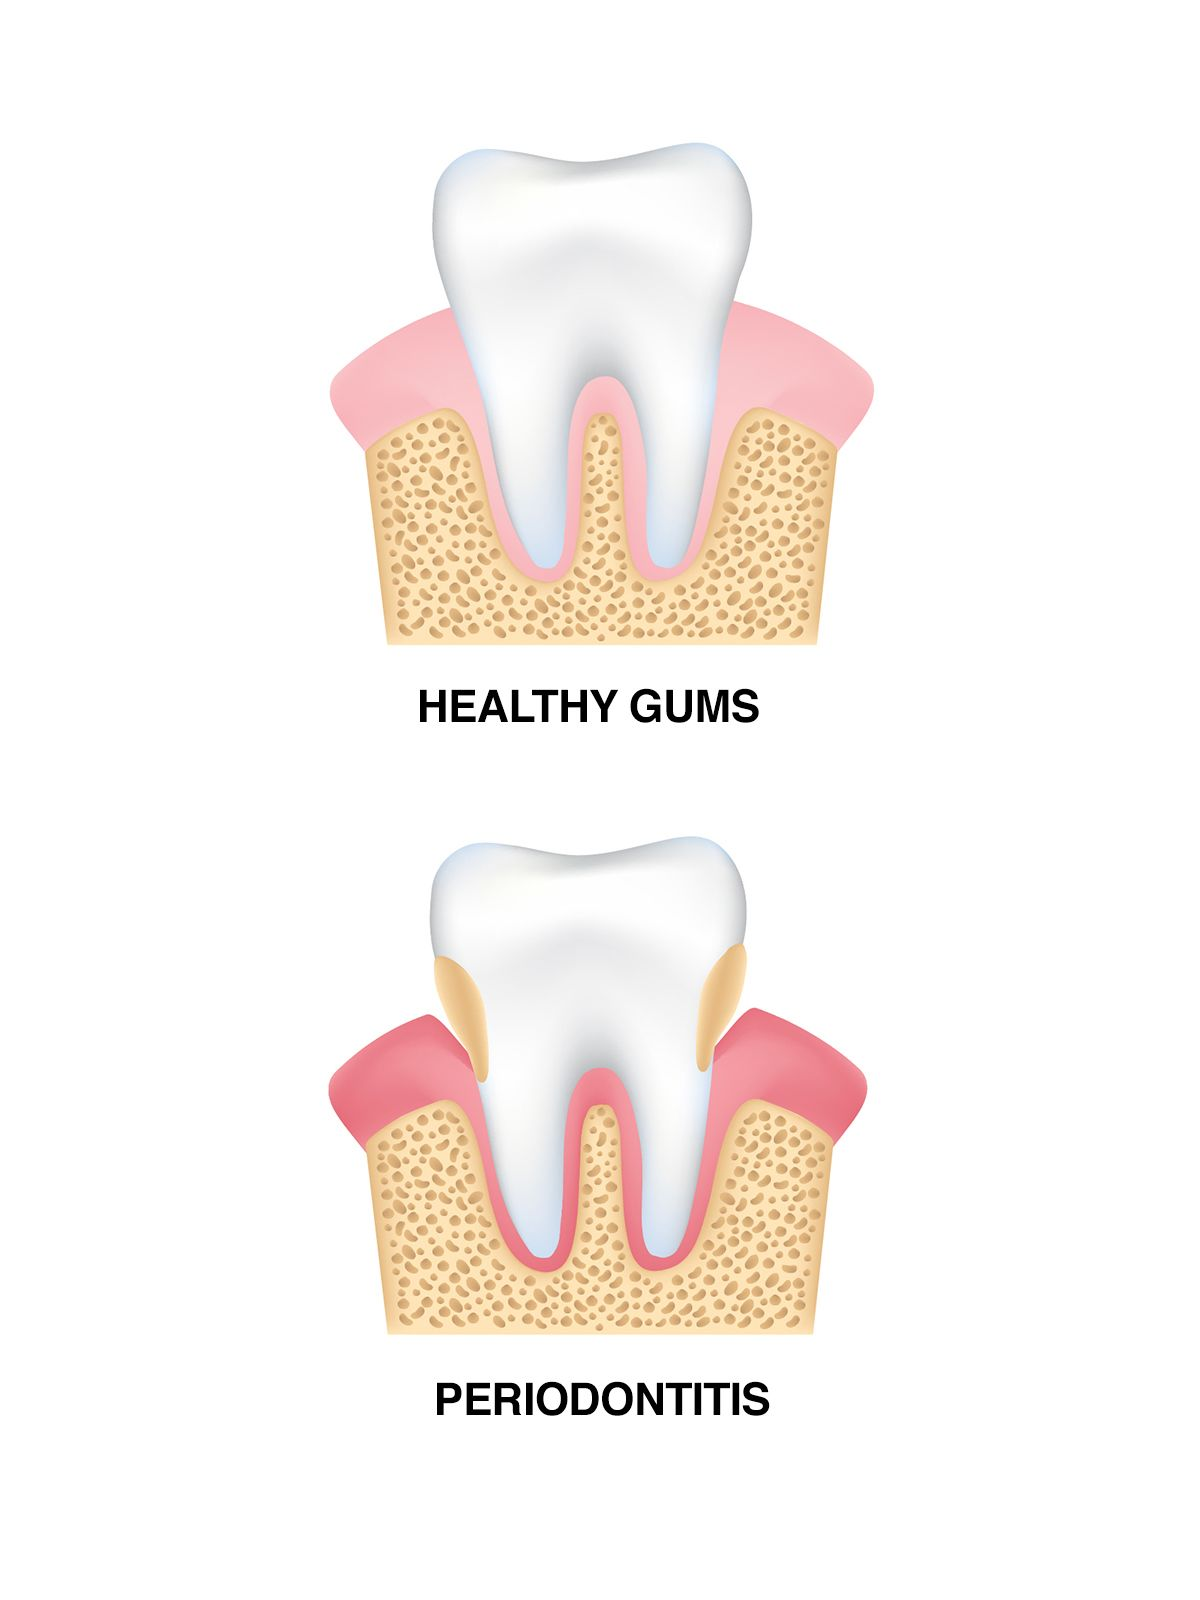 Healthy gums vs. those affected by gum disease